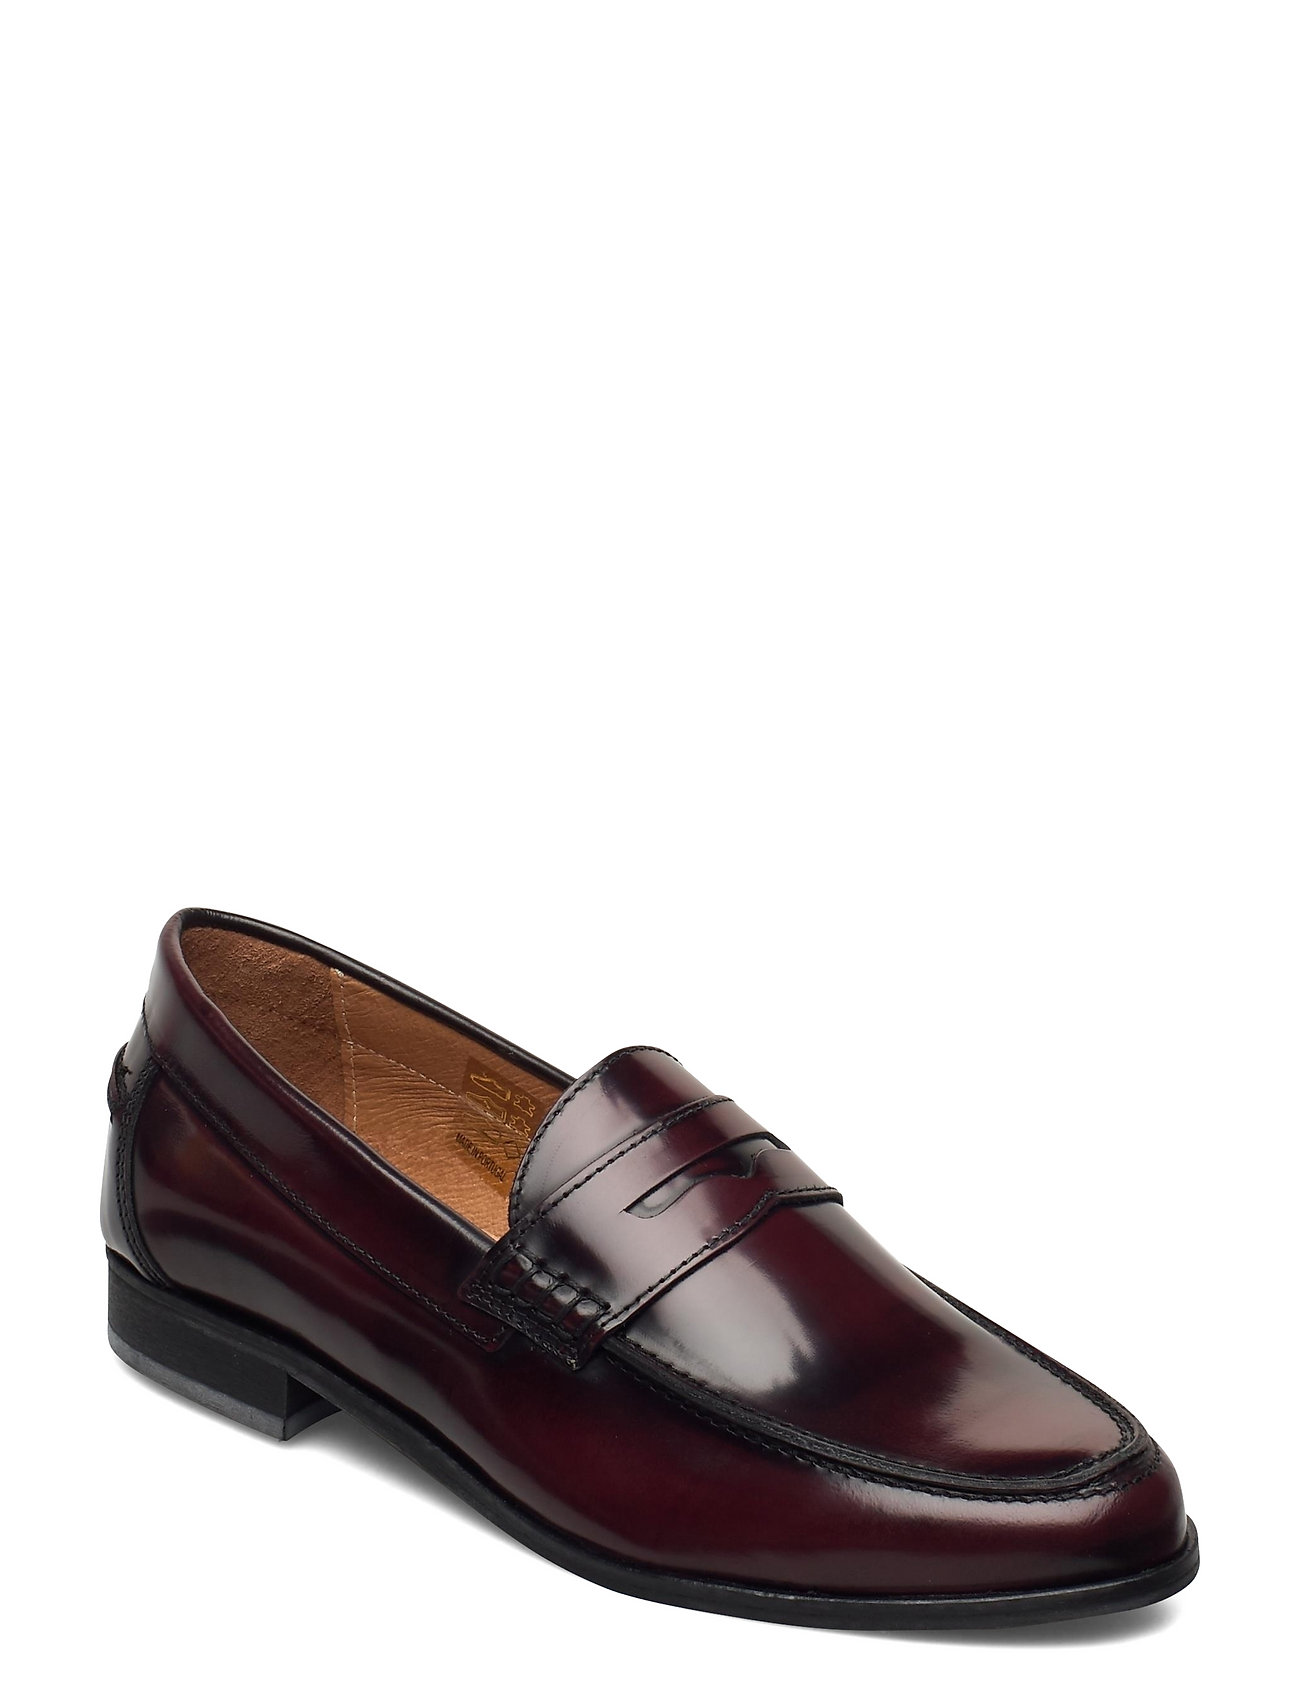 Image of Lady Loafer Loafers Flade Sko Rød Morris Lady (3487171657)